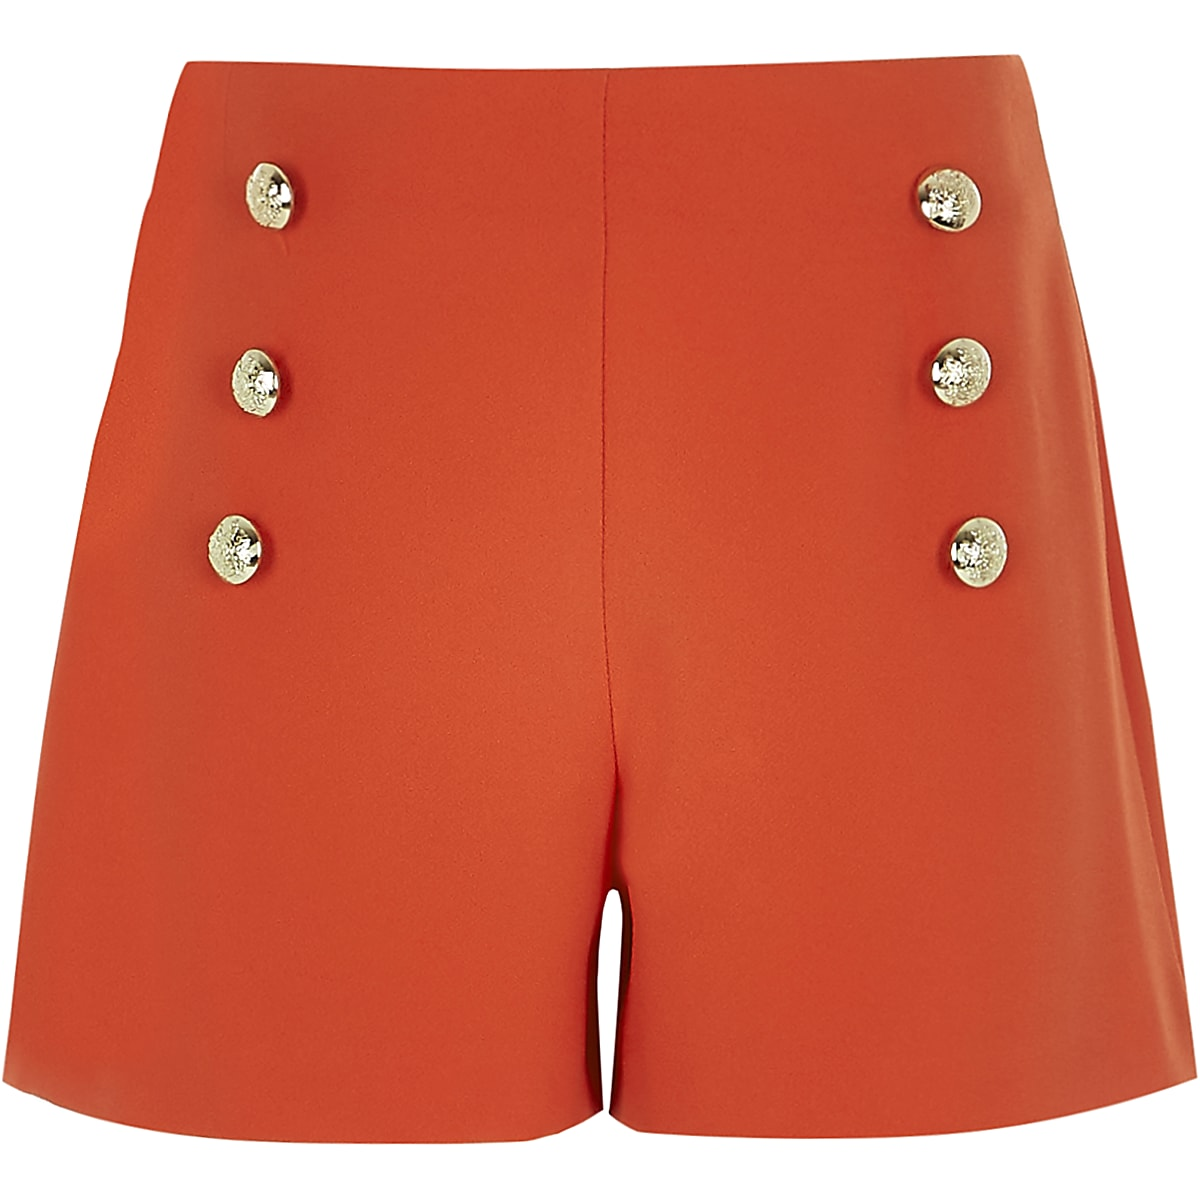 Rode short in legerlook voor meisjes